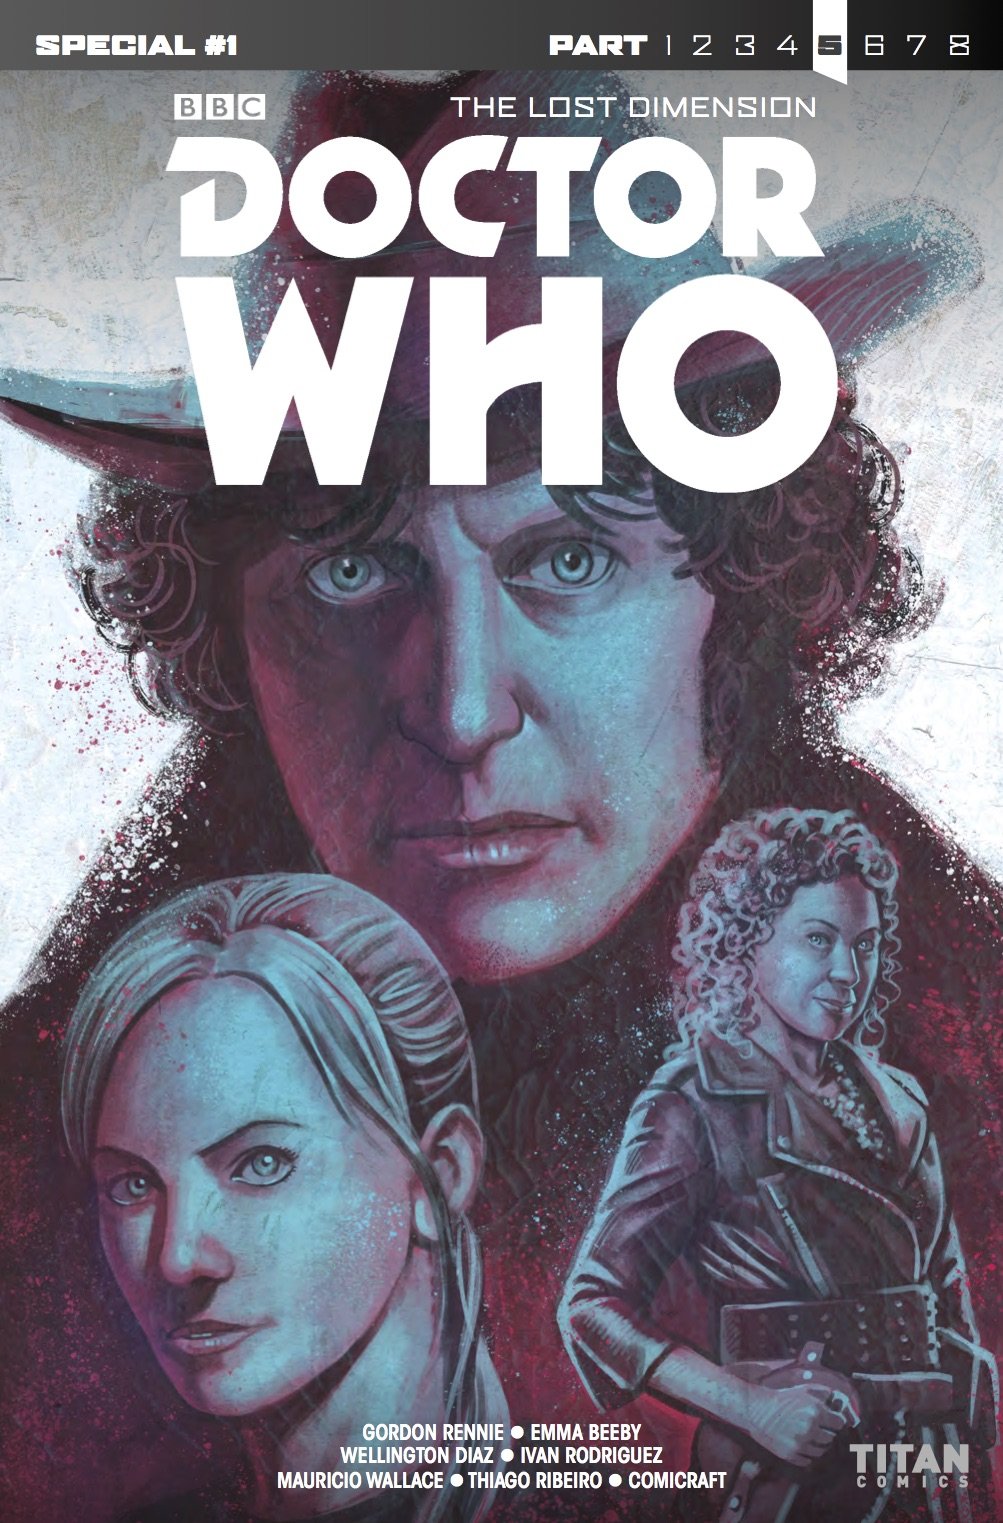 DOCTOR WHO: THE LOST DIMENSION SPECIAL #5